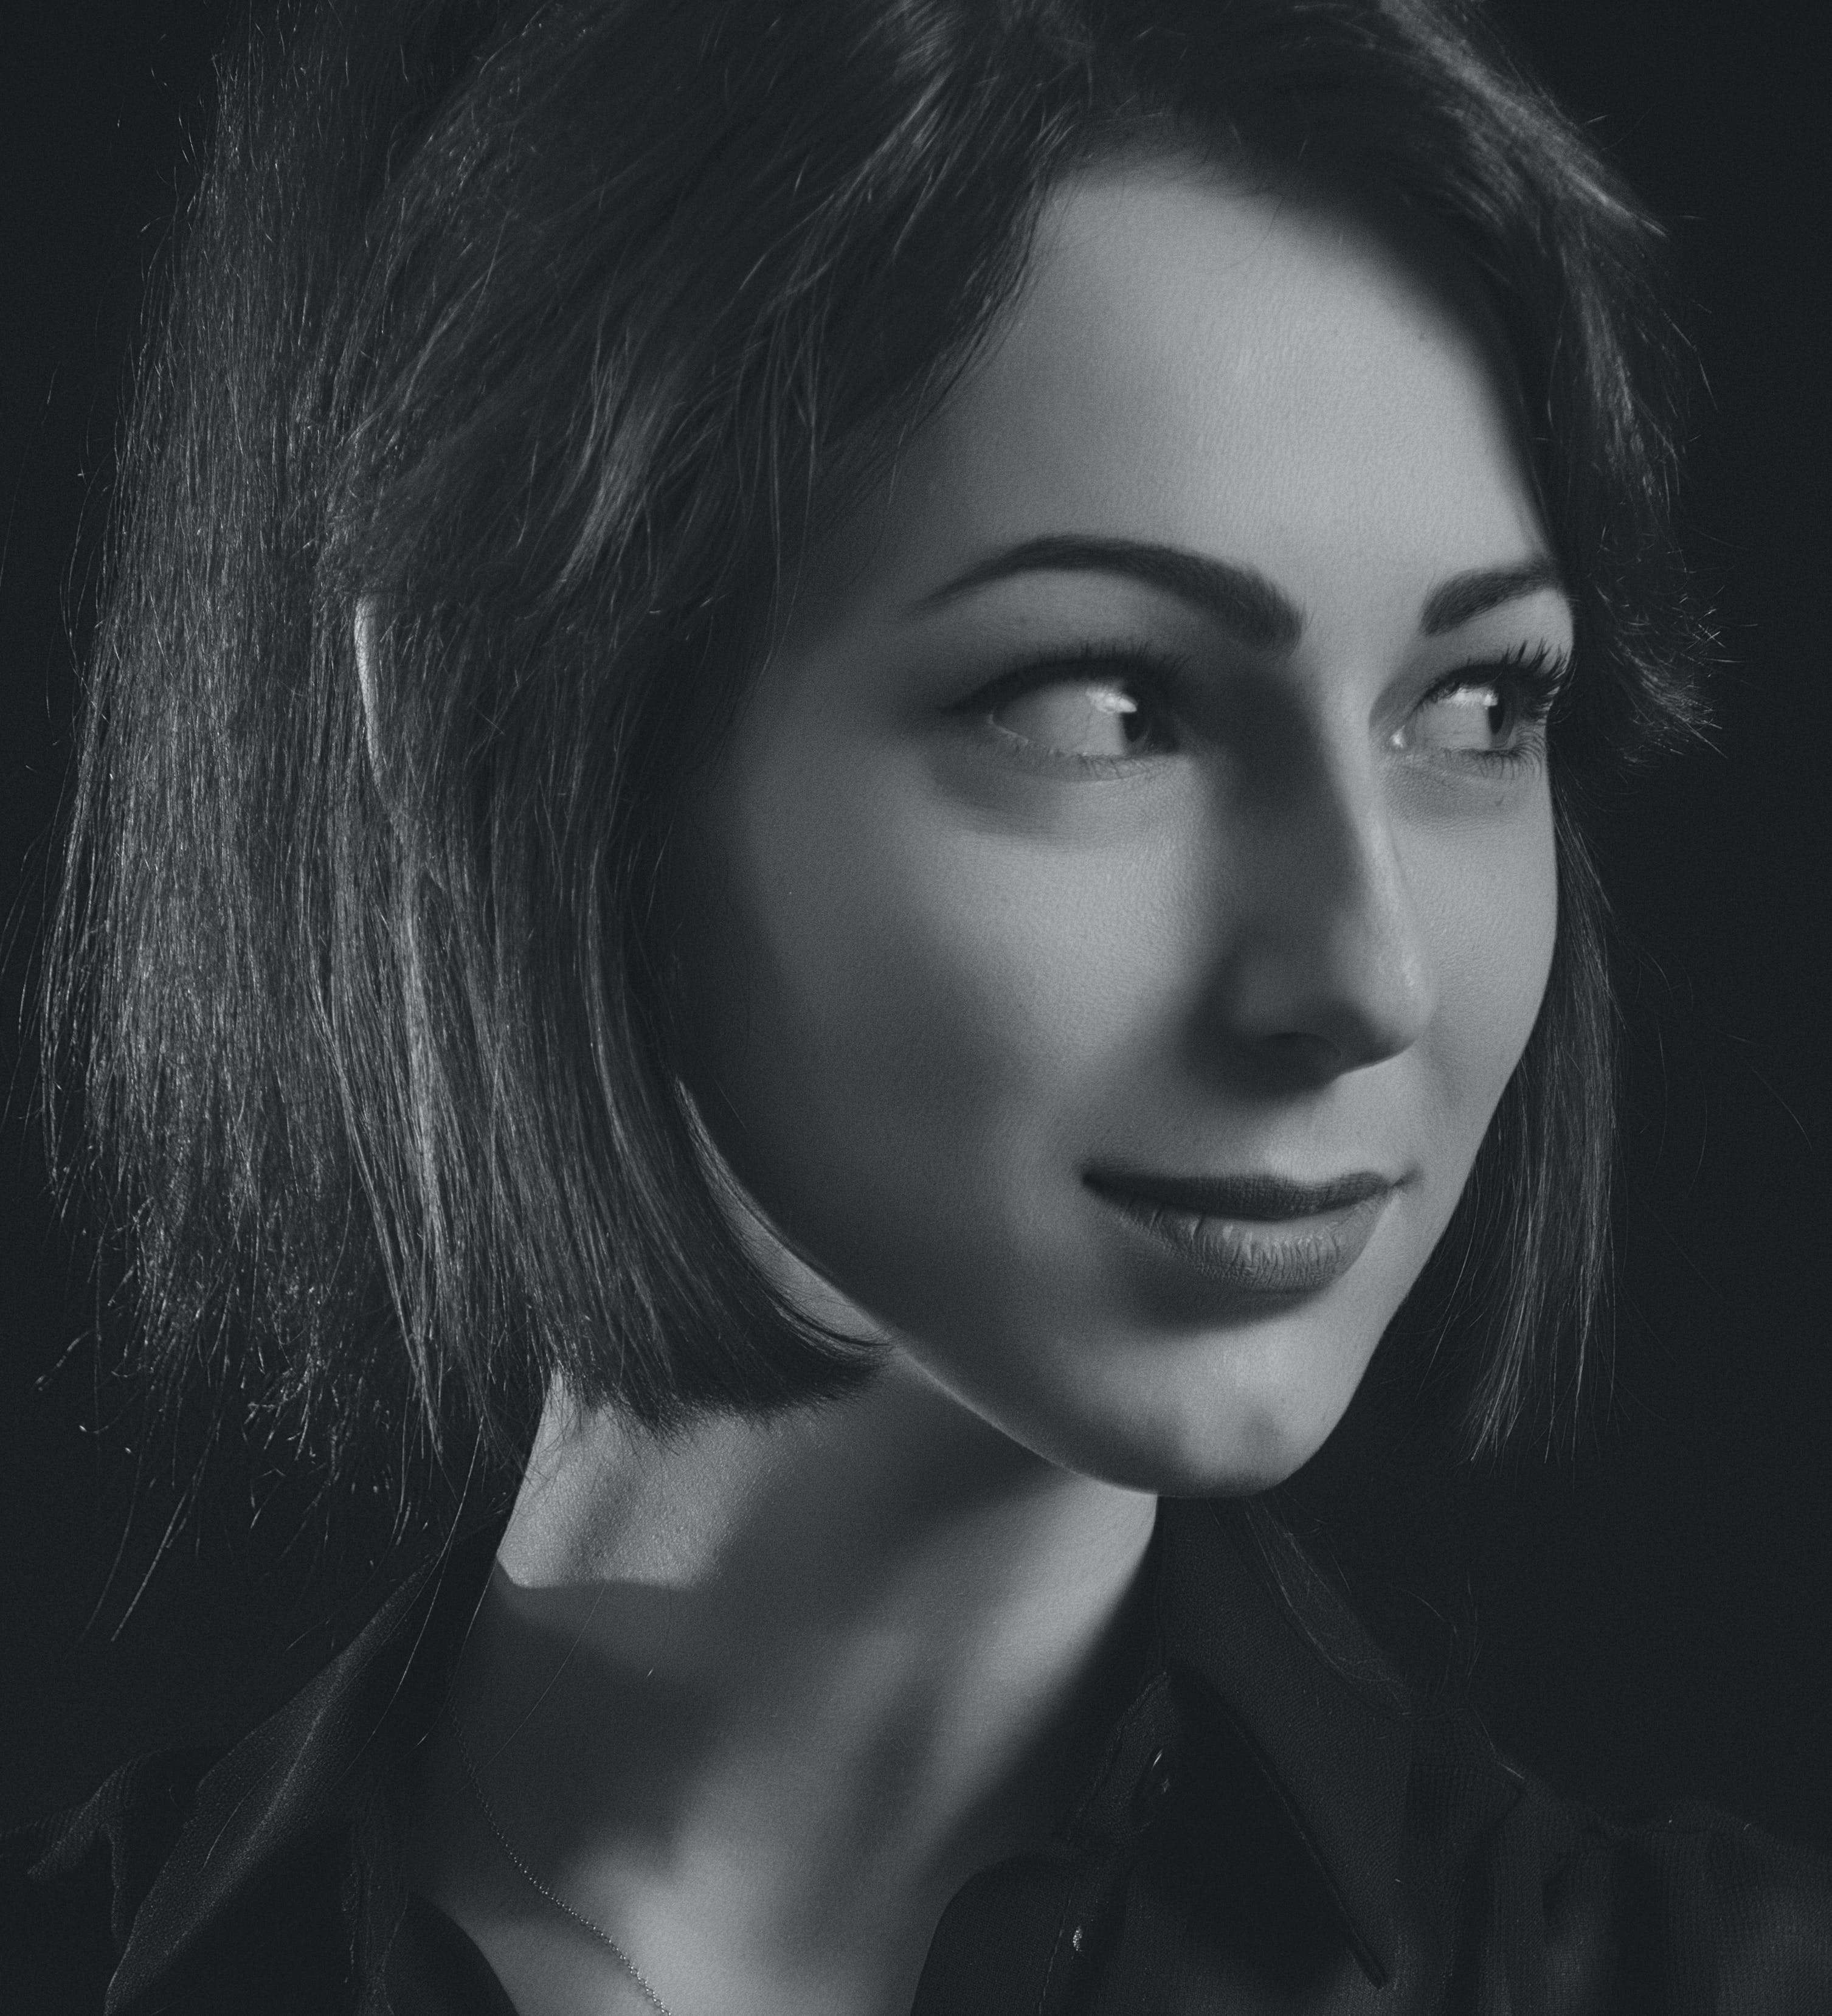 Grayscale Photo of Woman Wearing Collared Shirt Looking Sideways